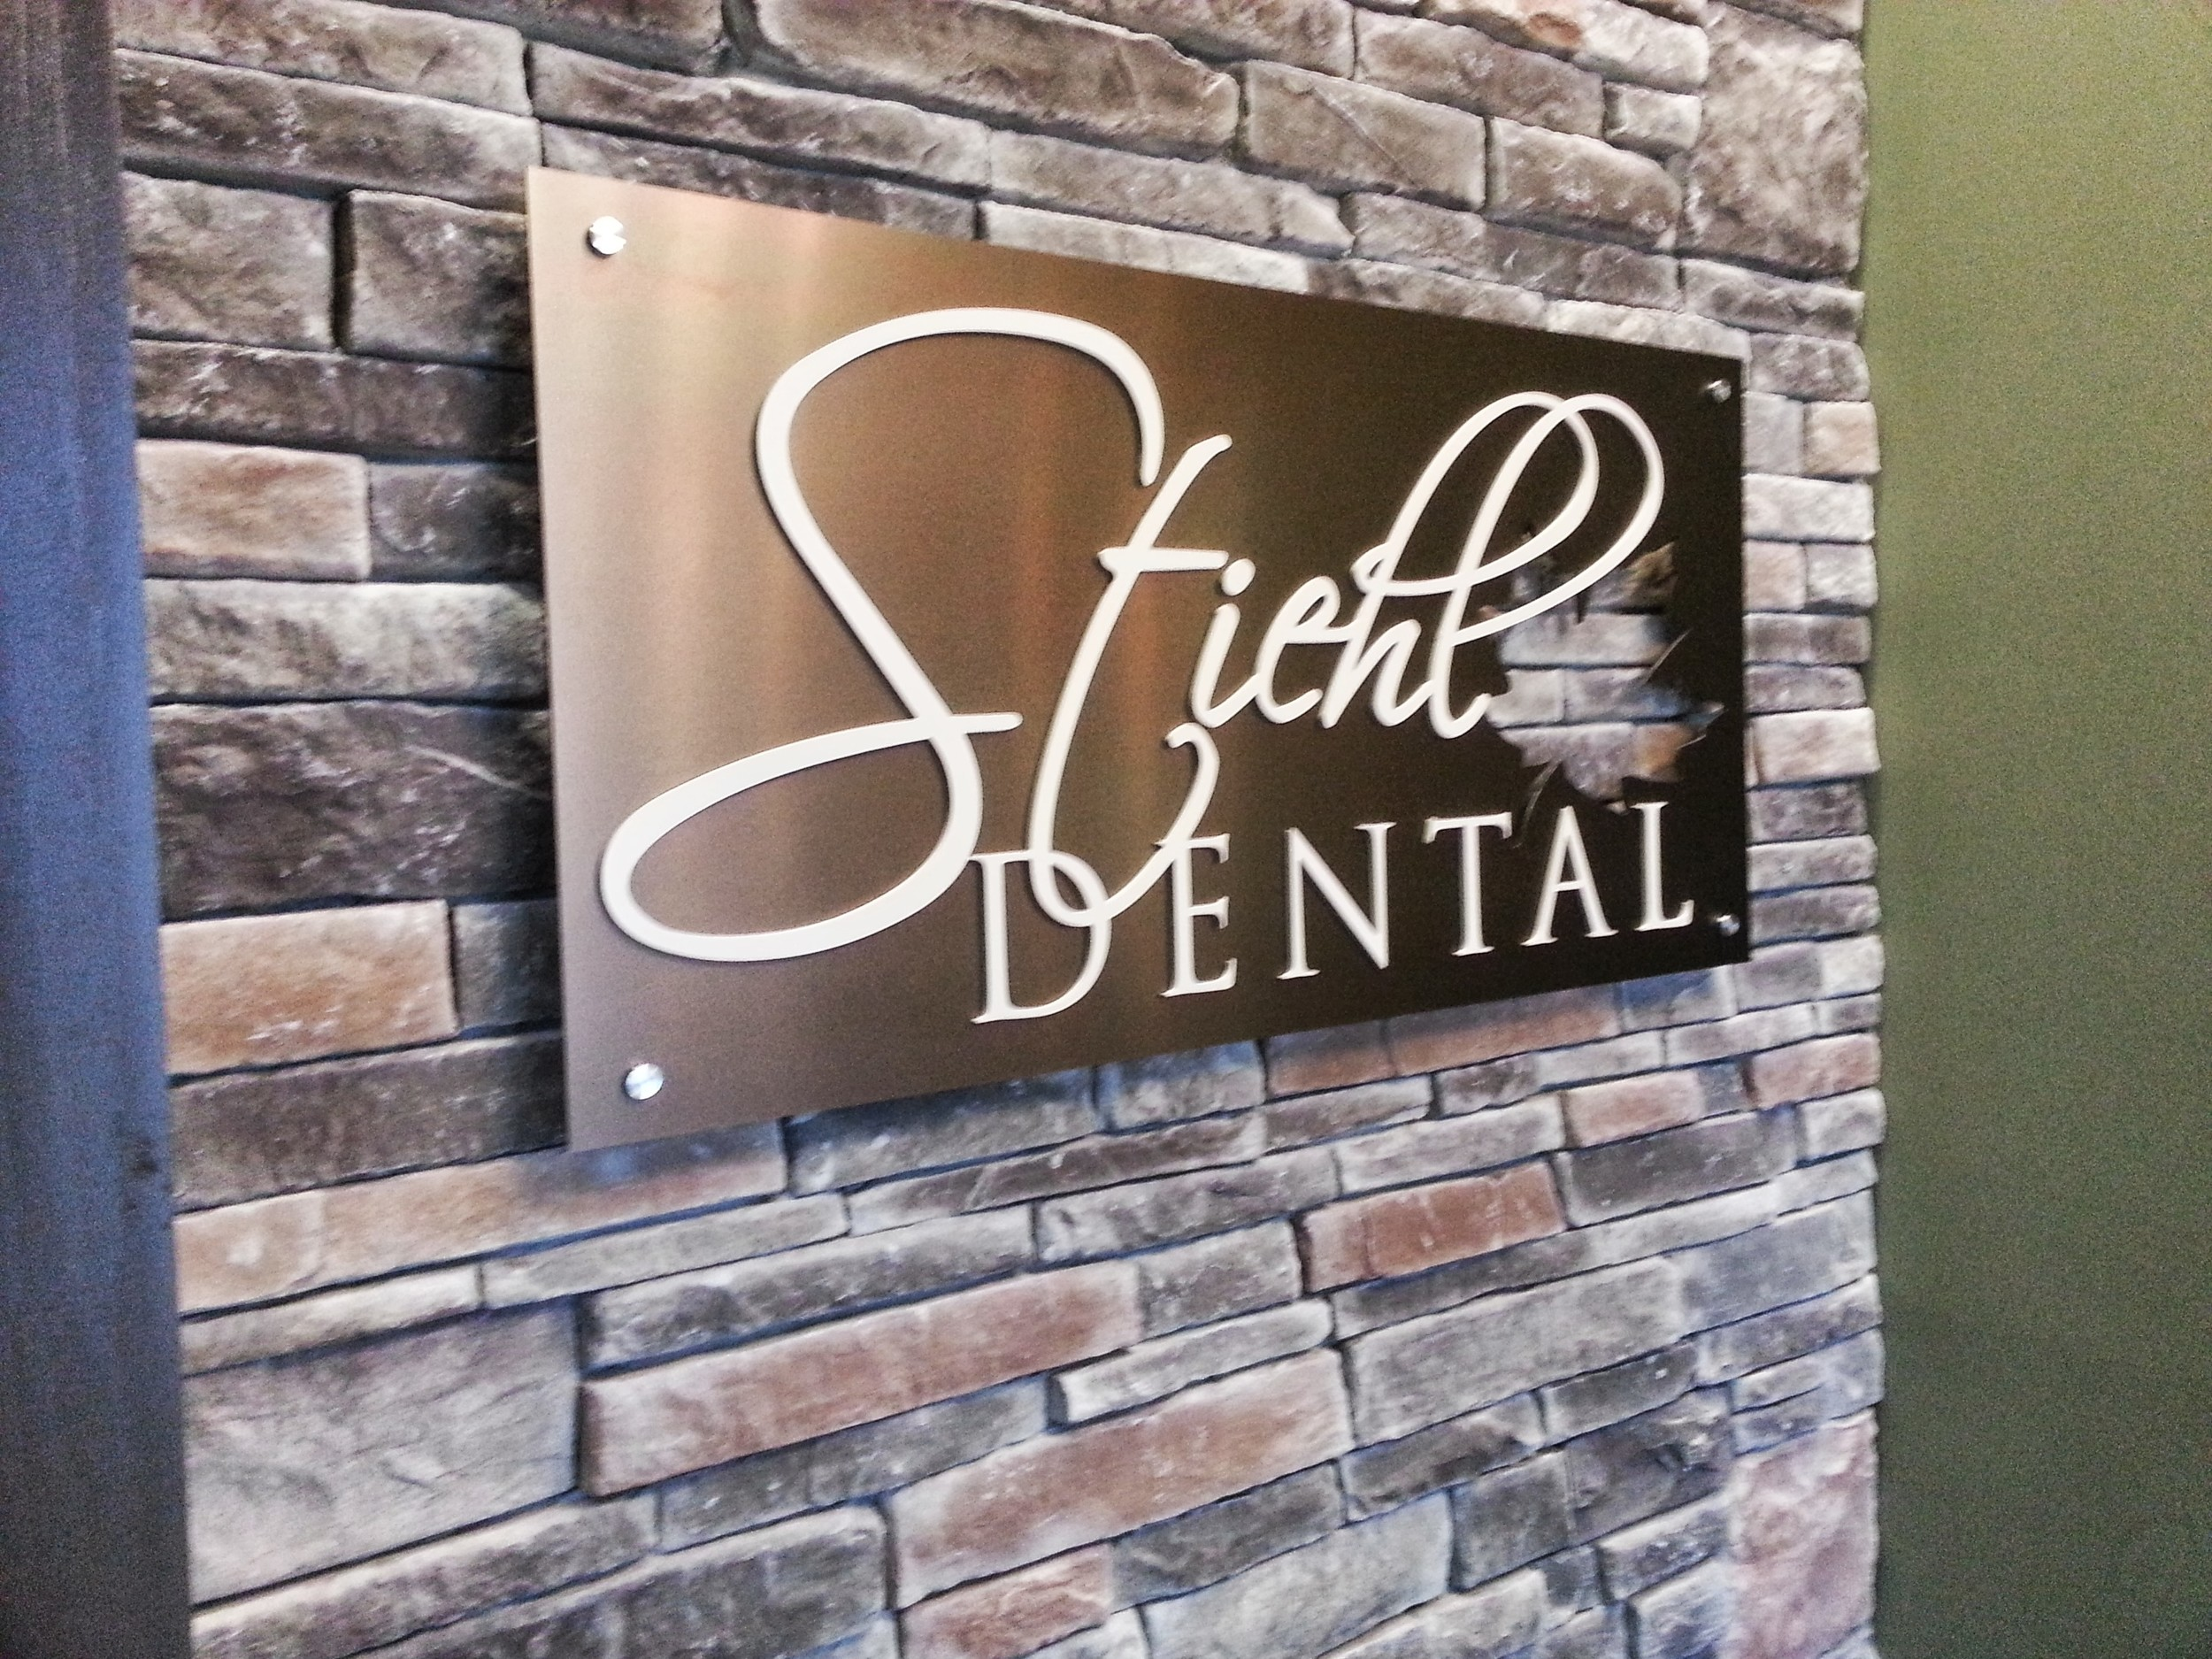 Stiehl Dental.jpg